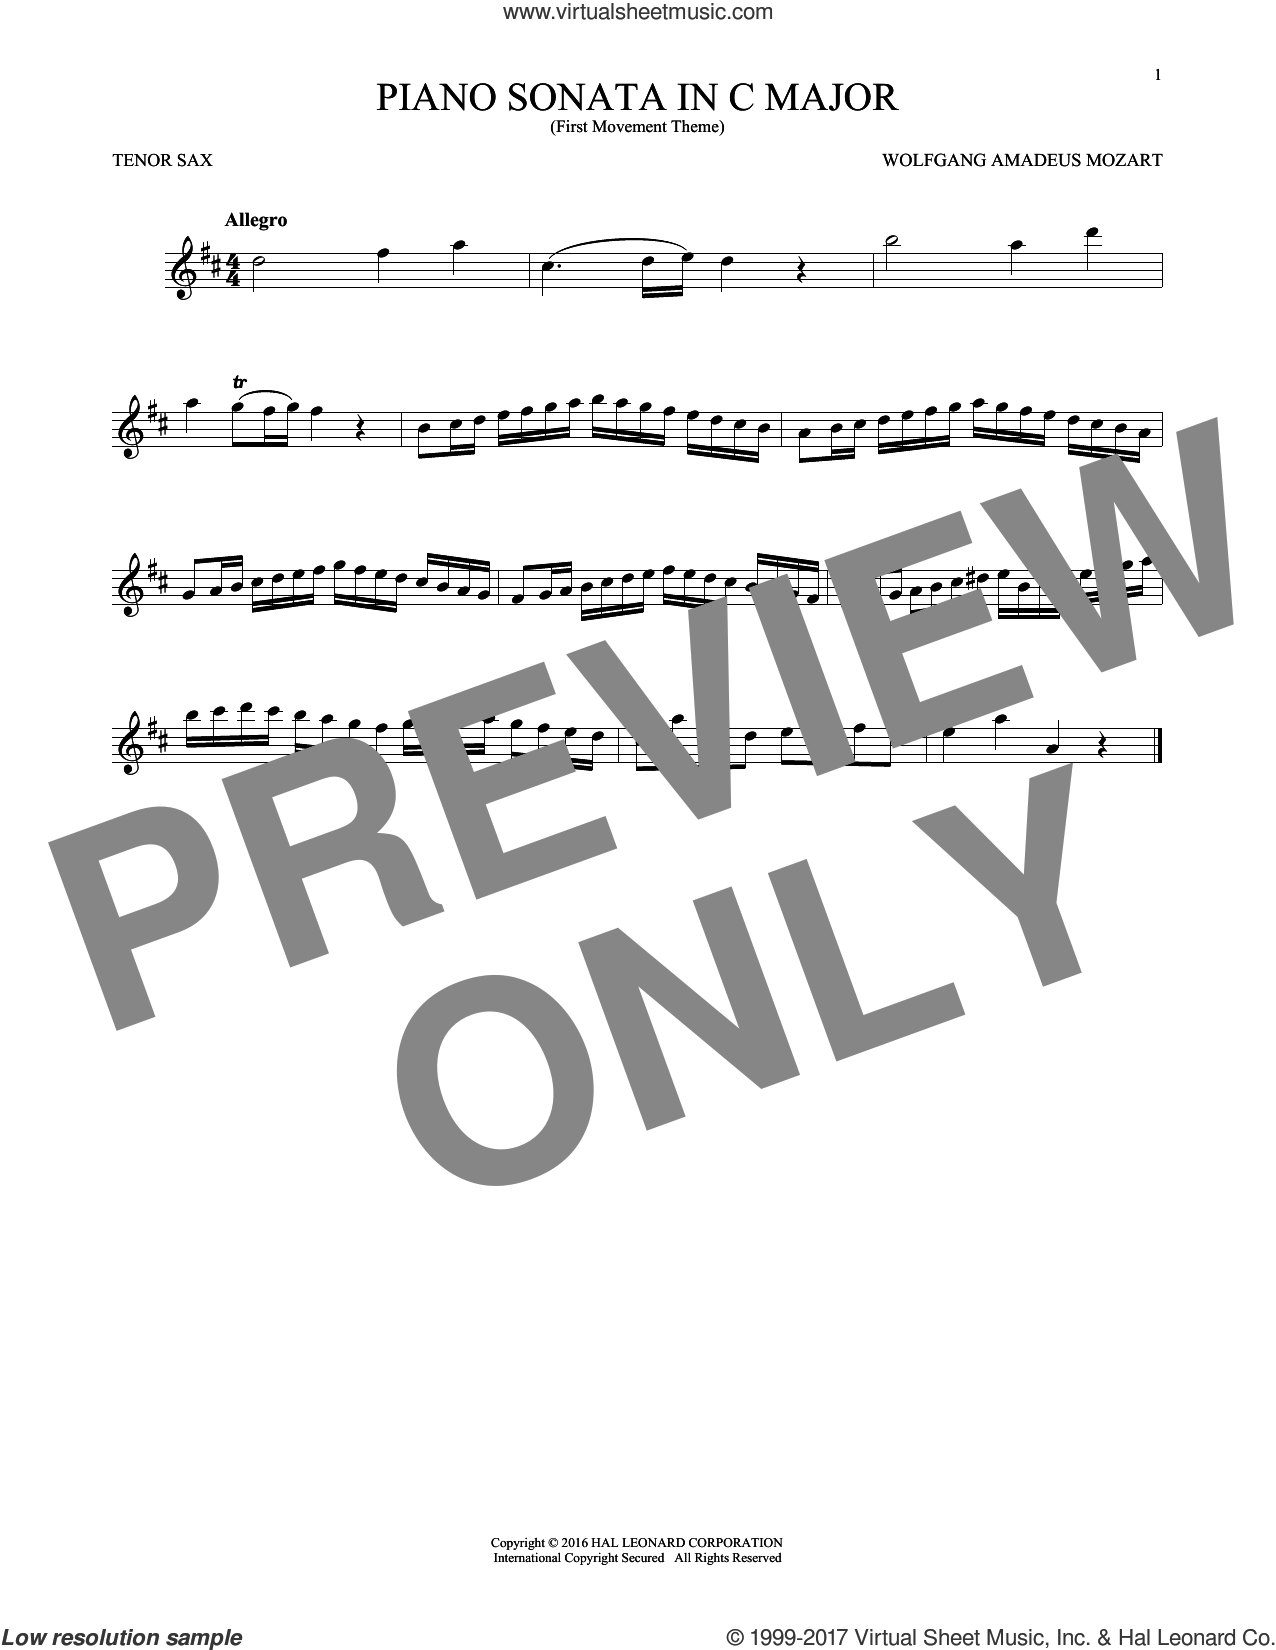 Piano Sonata In C Major sheet music for tenor saxophone solo by Wolfgang Amadeus Mozart, classical score, intermediate skill level